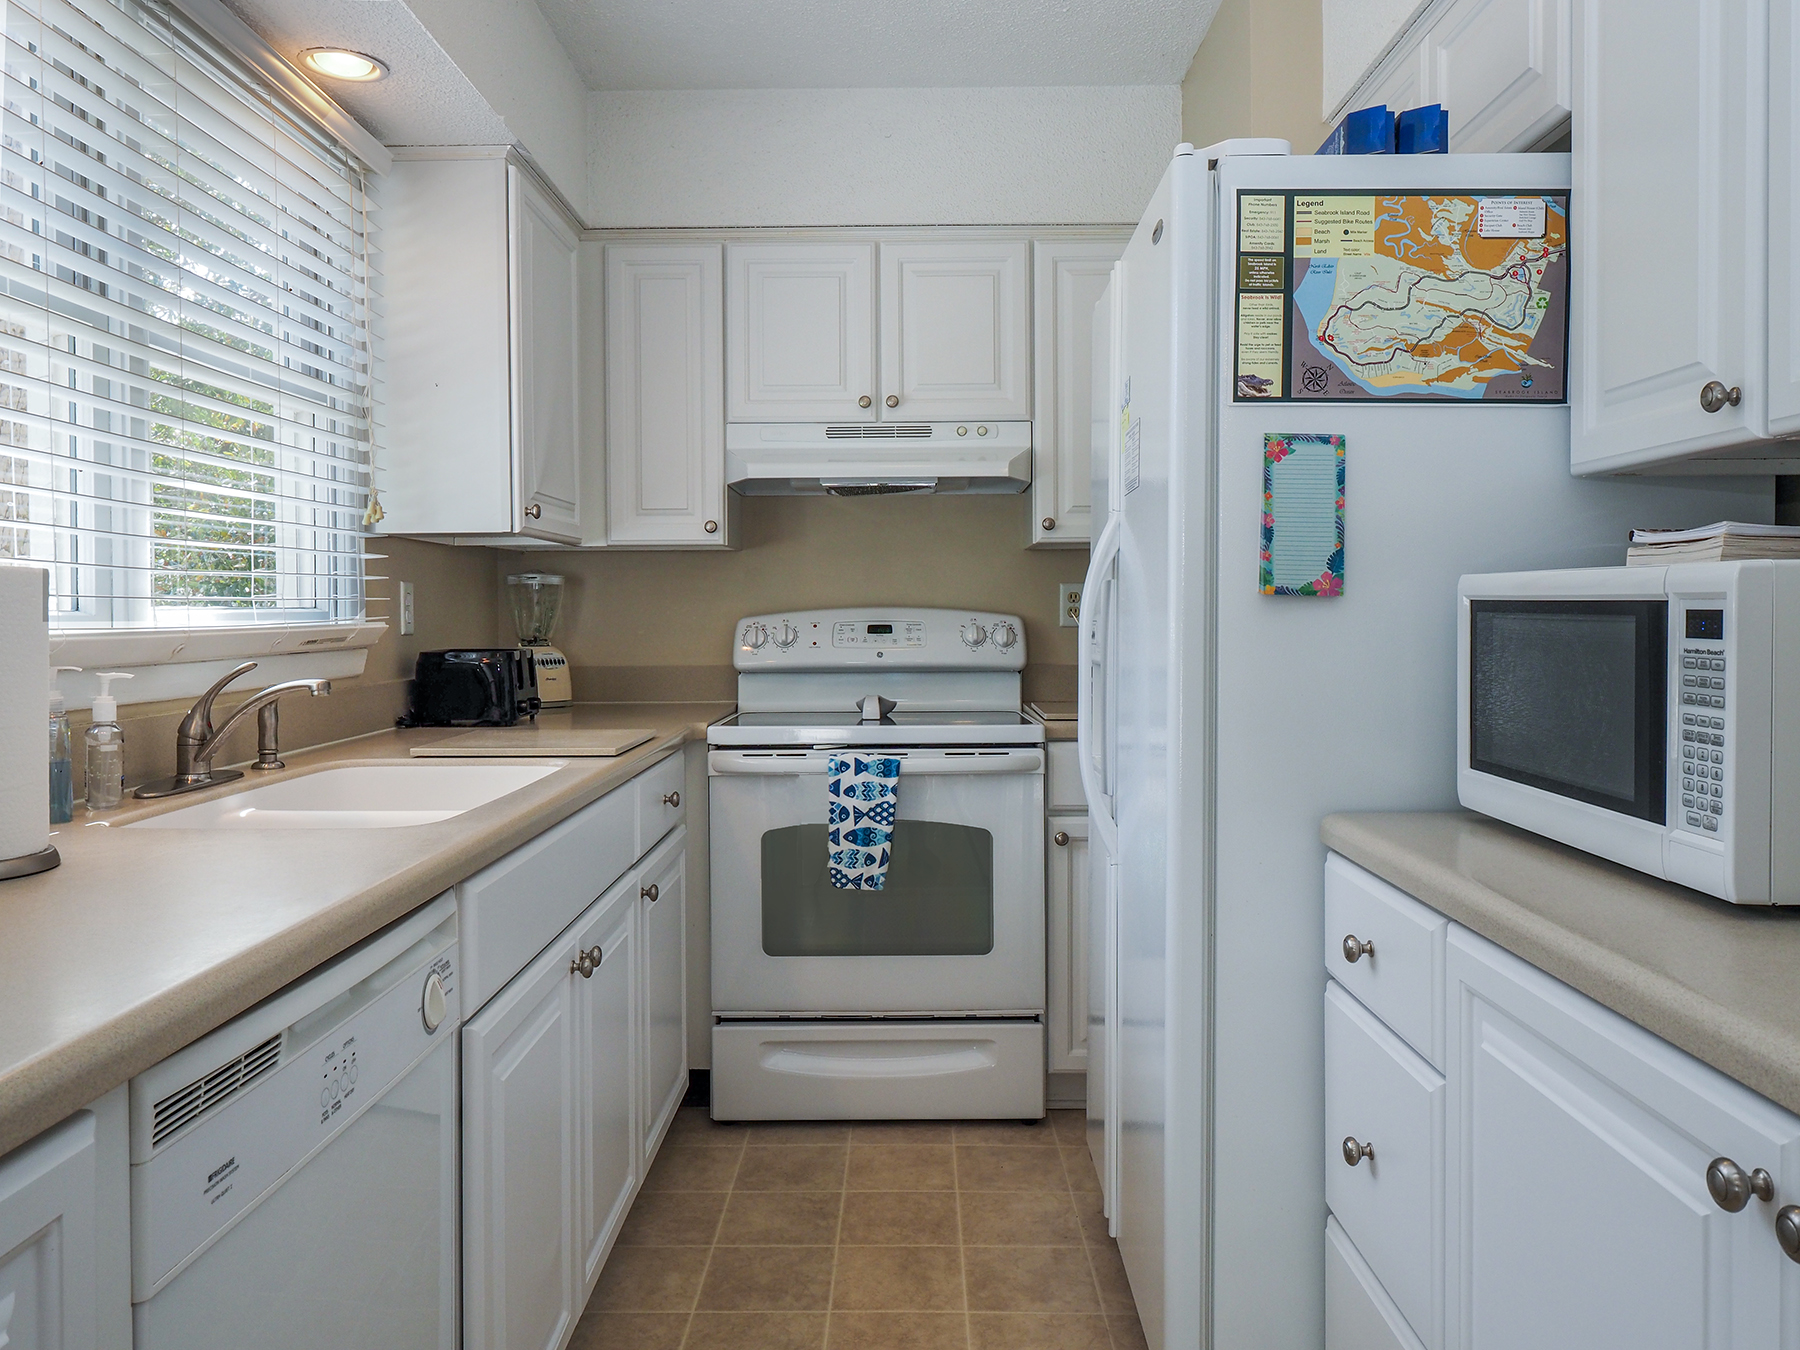 Galley kitchen with natural light from window above sink